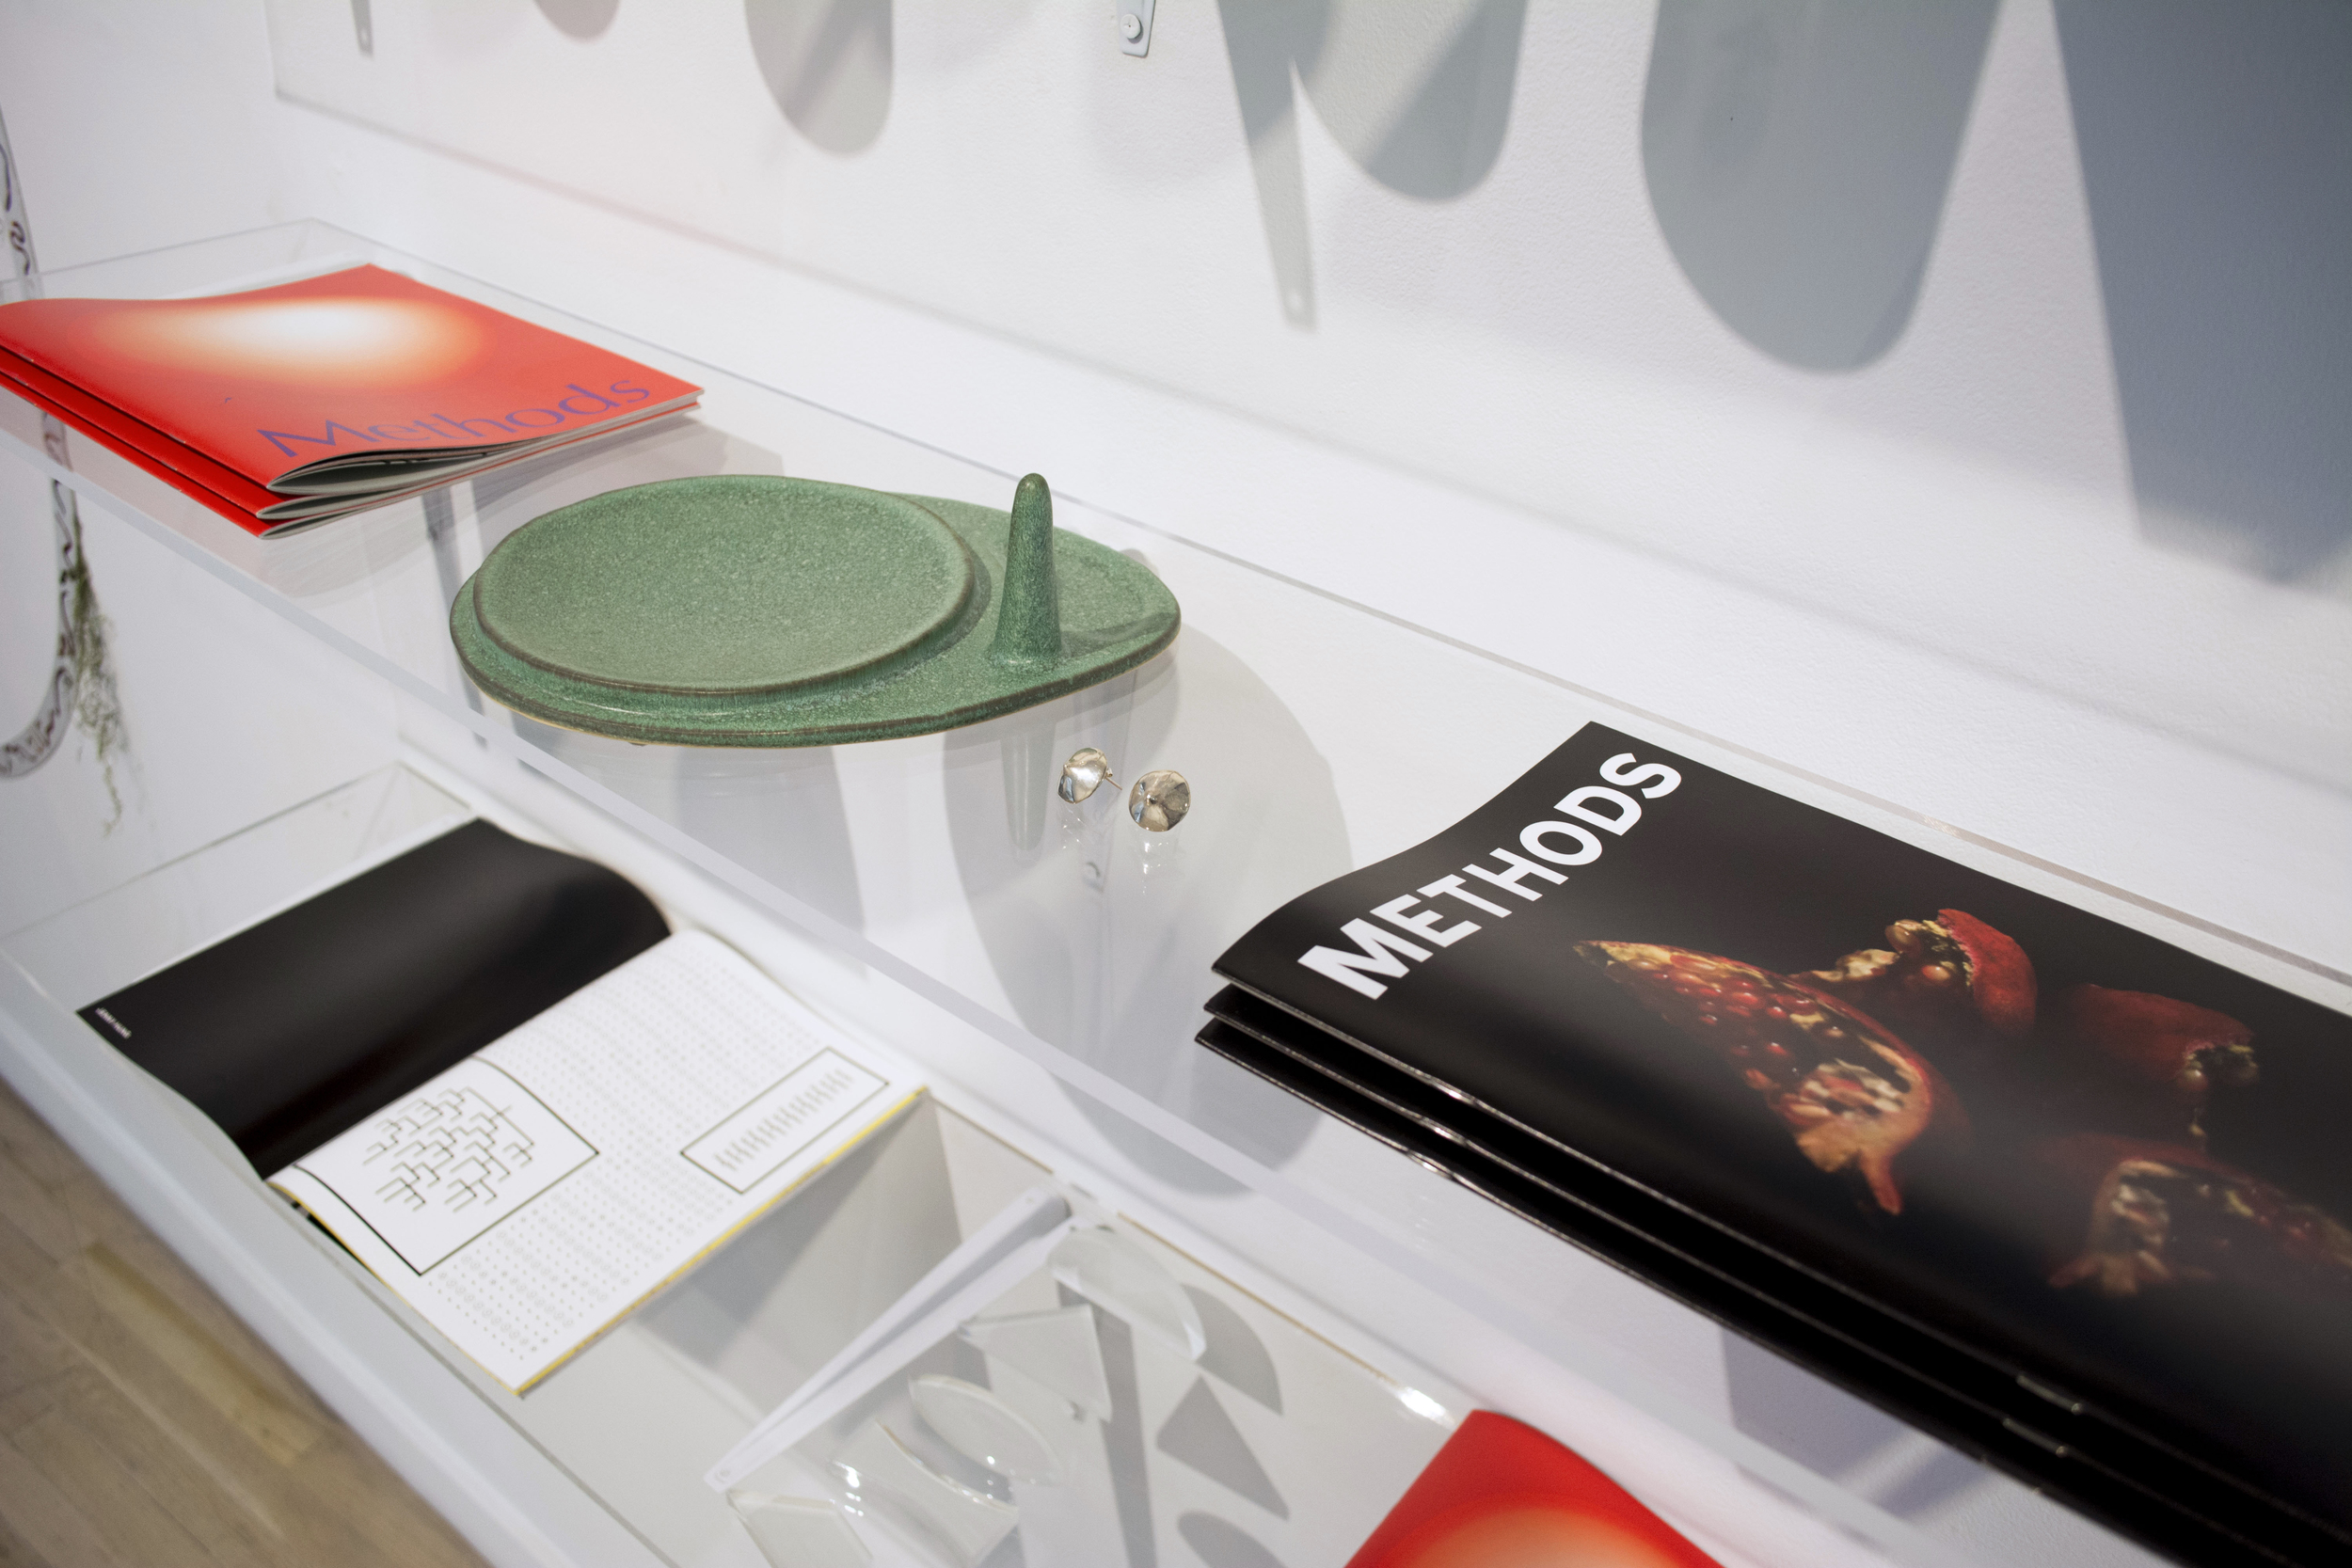 Ria Roberts  Design Within Reach , 2016  A shelving system composed of discarded plexiglass from exhibitions the Metropolitan Museum of Art, where Roberts works as a graphic designer, including (pictured) ceramics by Lauren Francescone, jewelry by Sarah Shikama,  Methods  magazine (No.1 and 2), and  Paid Vacation , 2016, a set of glass lens with Maslow's hierarchy of needs engraved on them by Ria Roberts.